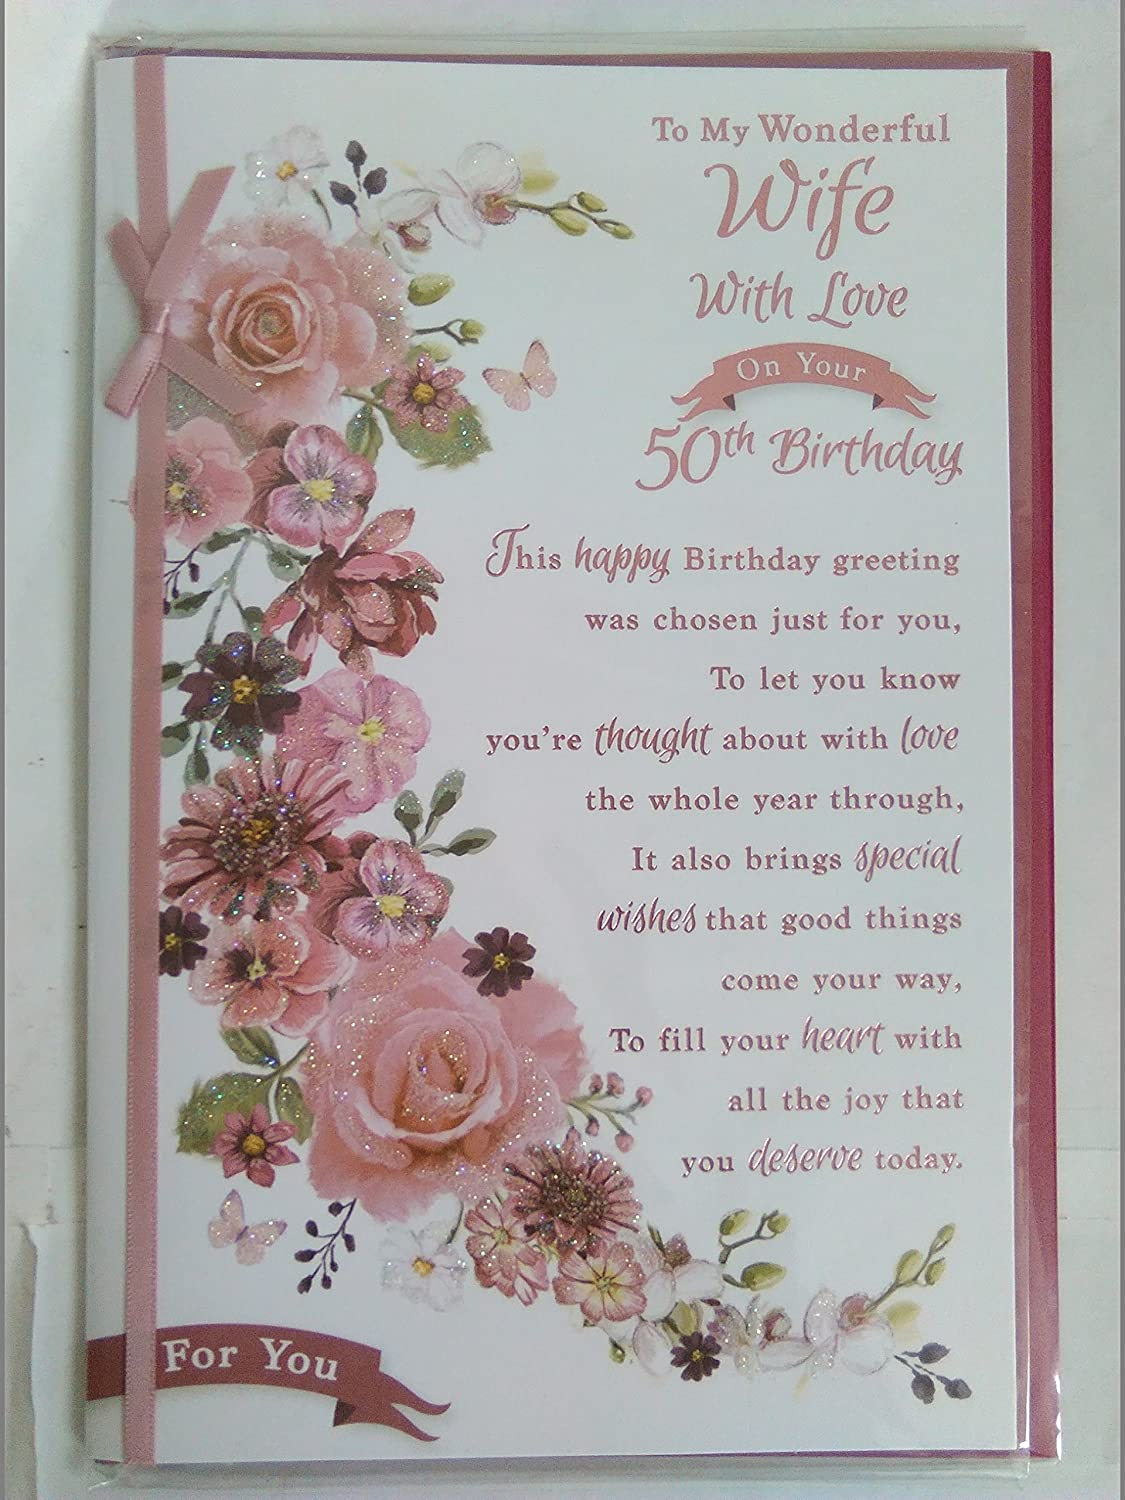 To my wonderful wife with love on your 50th birthday card 50 fifty to my wonderful wife with love on your 50th birthday card 50 fifty whitepink flowers glitterfoilribbon detail amazon office products izmirmasajfo